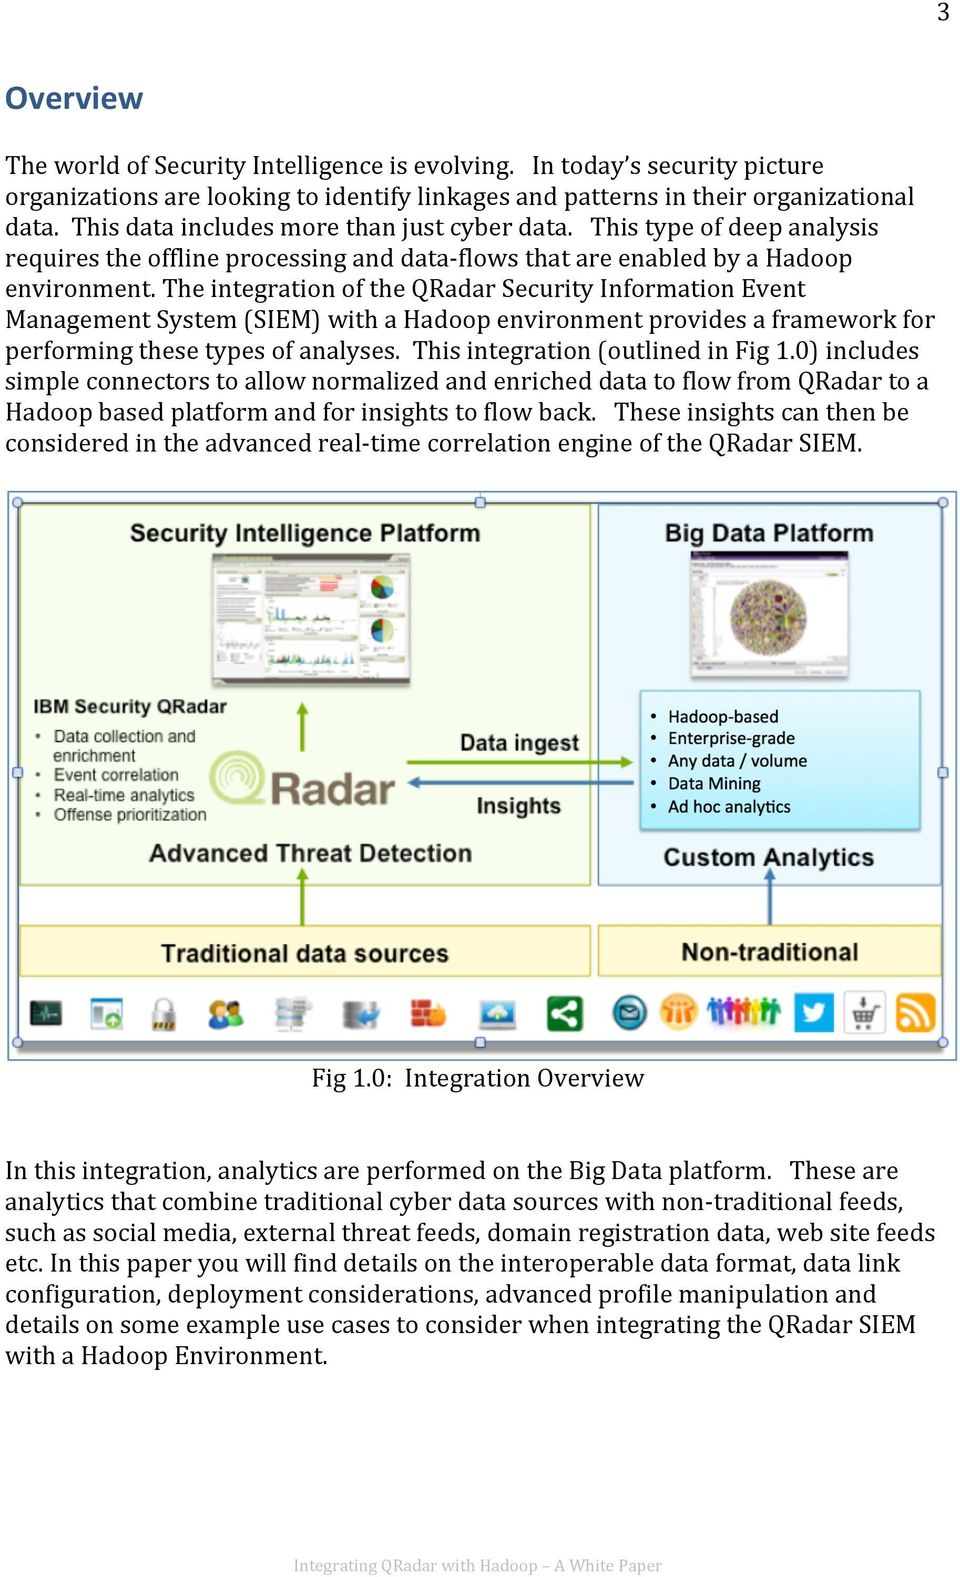 Integrating QRadar with Hadoop A White Paper - PDF